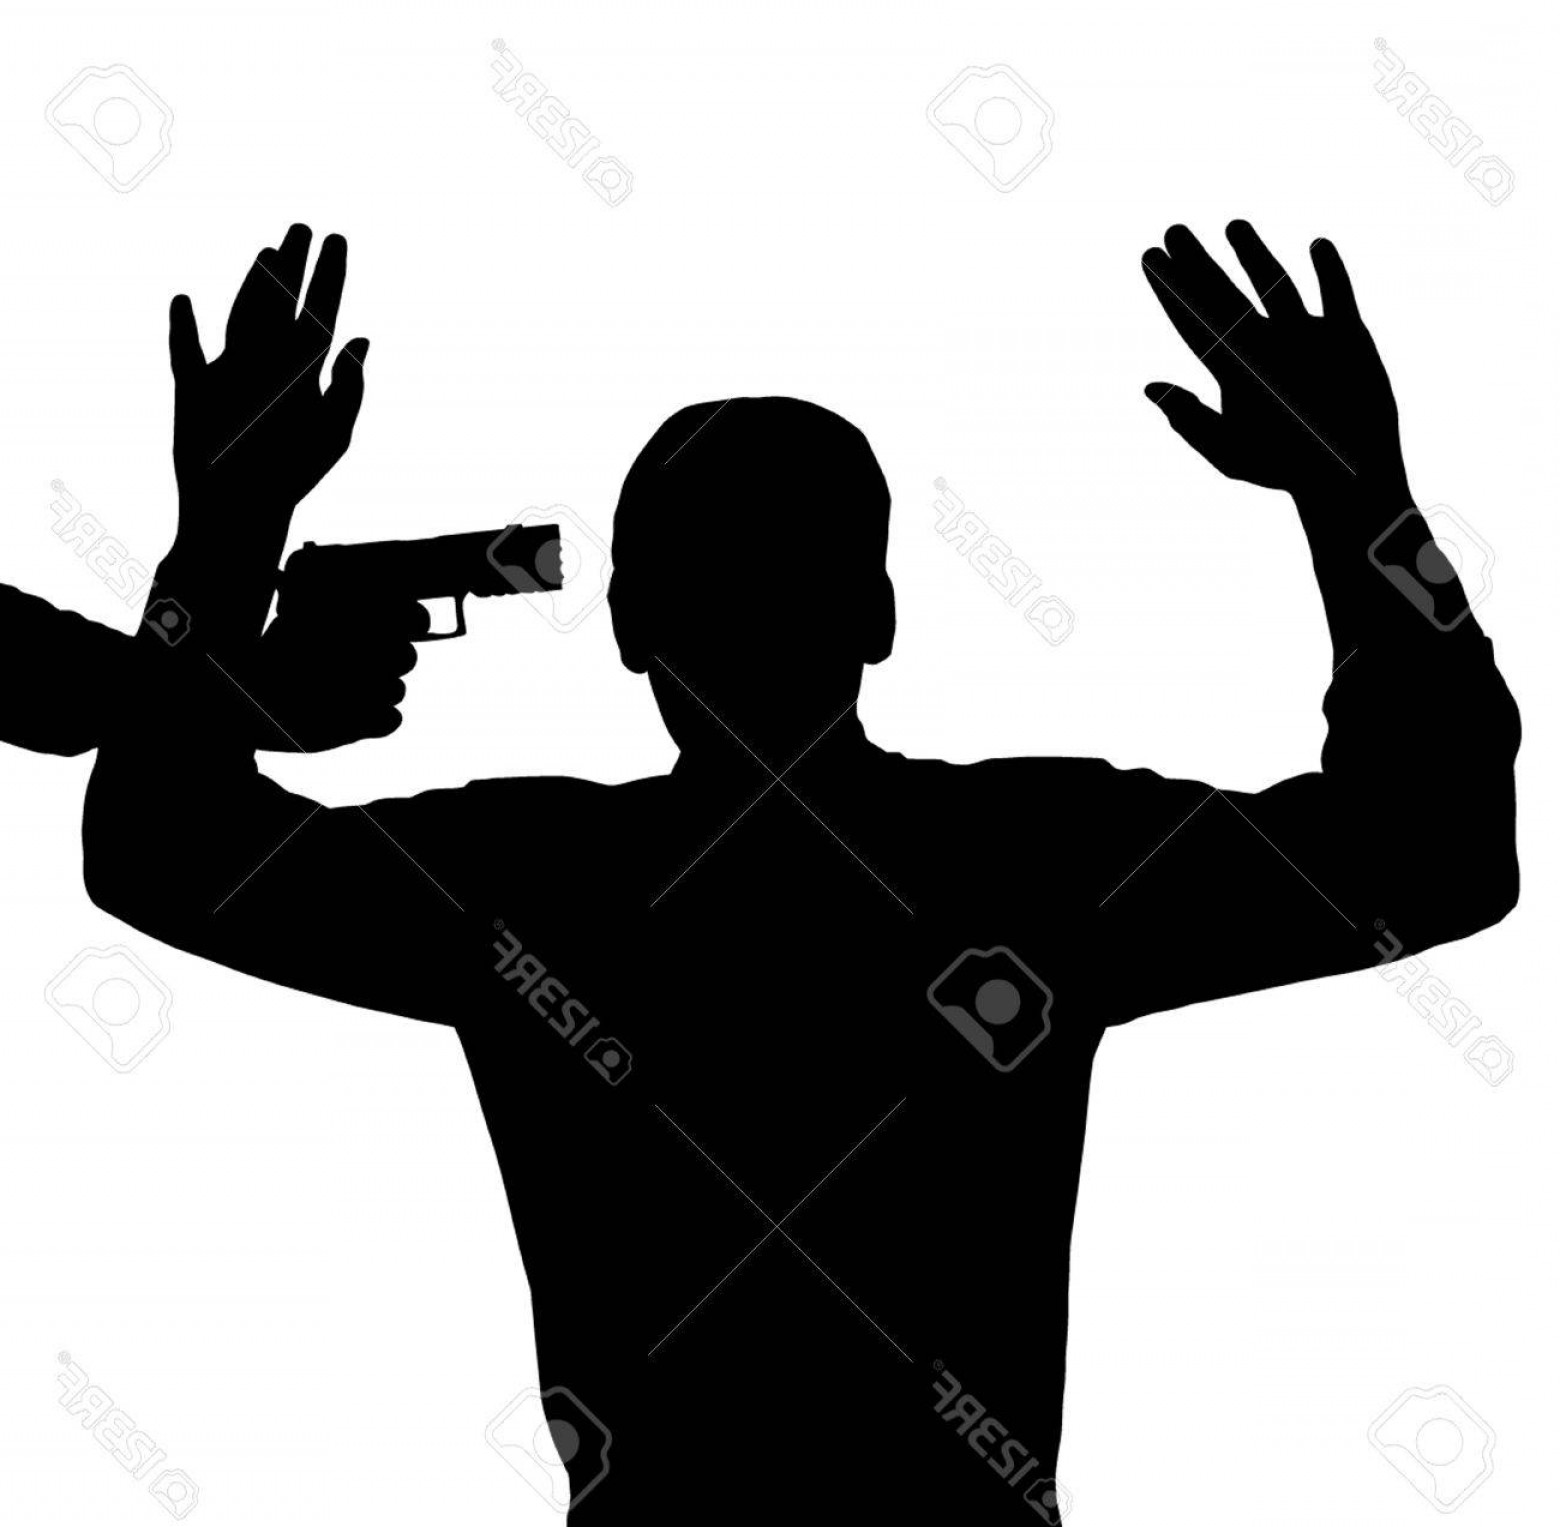 Finger Gun To Head Vector: Photoman Surrendering With Gun Against His Head